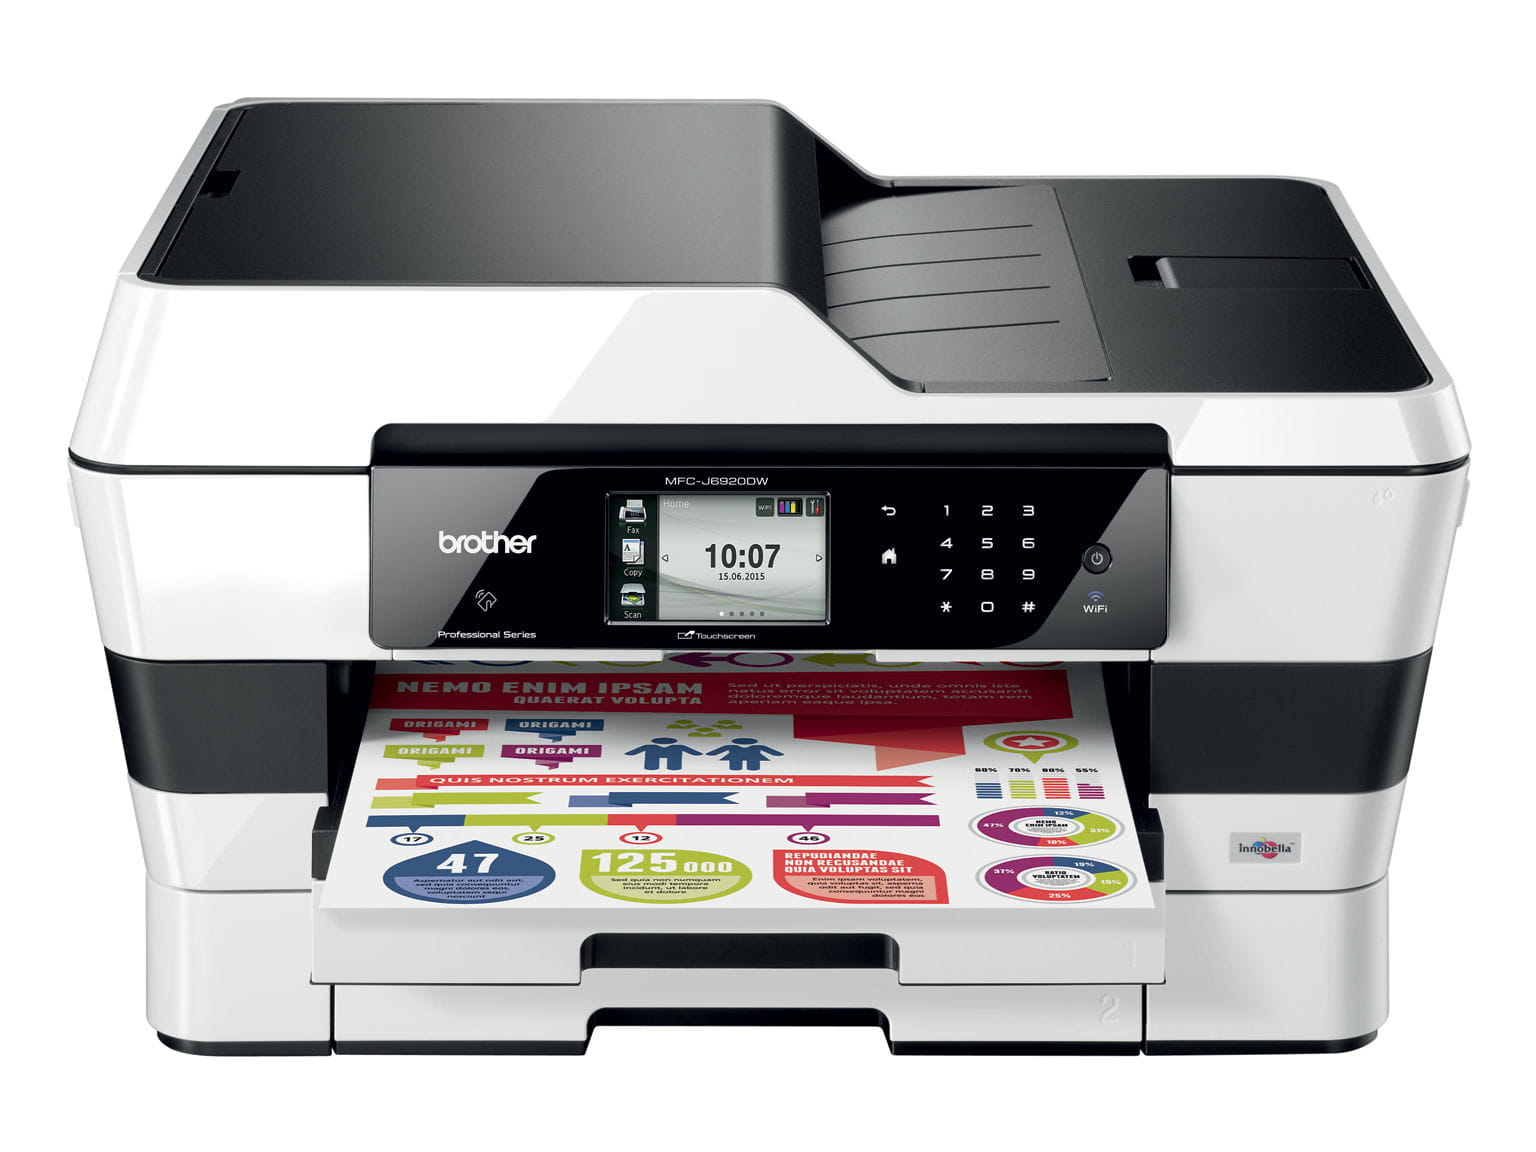 Brother MFC-J6520DW multifunzione con stampa, copia, scansione e fax fino al formato A3